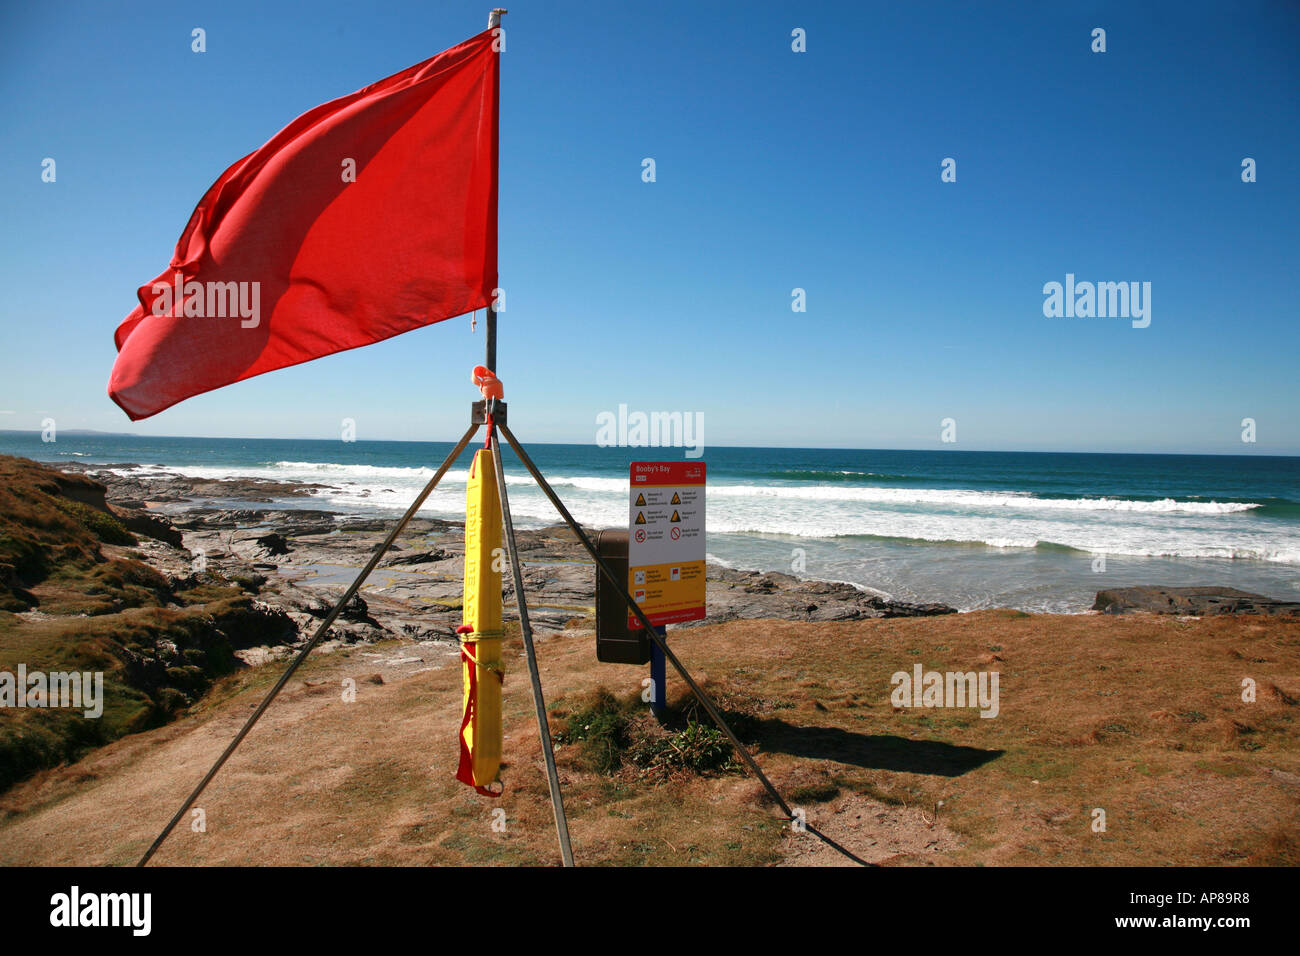 Red flag flying at Booby's Bay on the North Cornish Coast - Stock Image